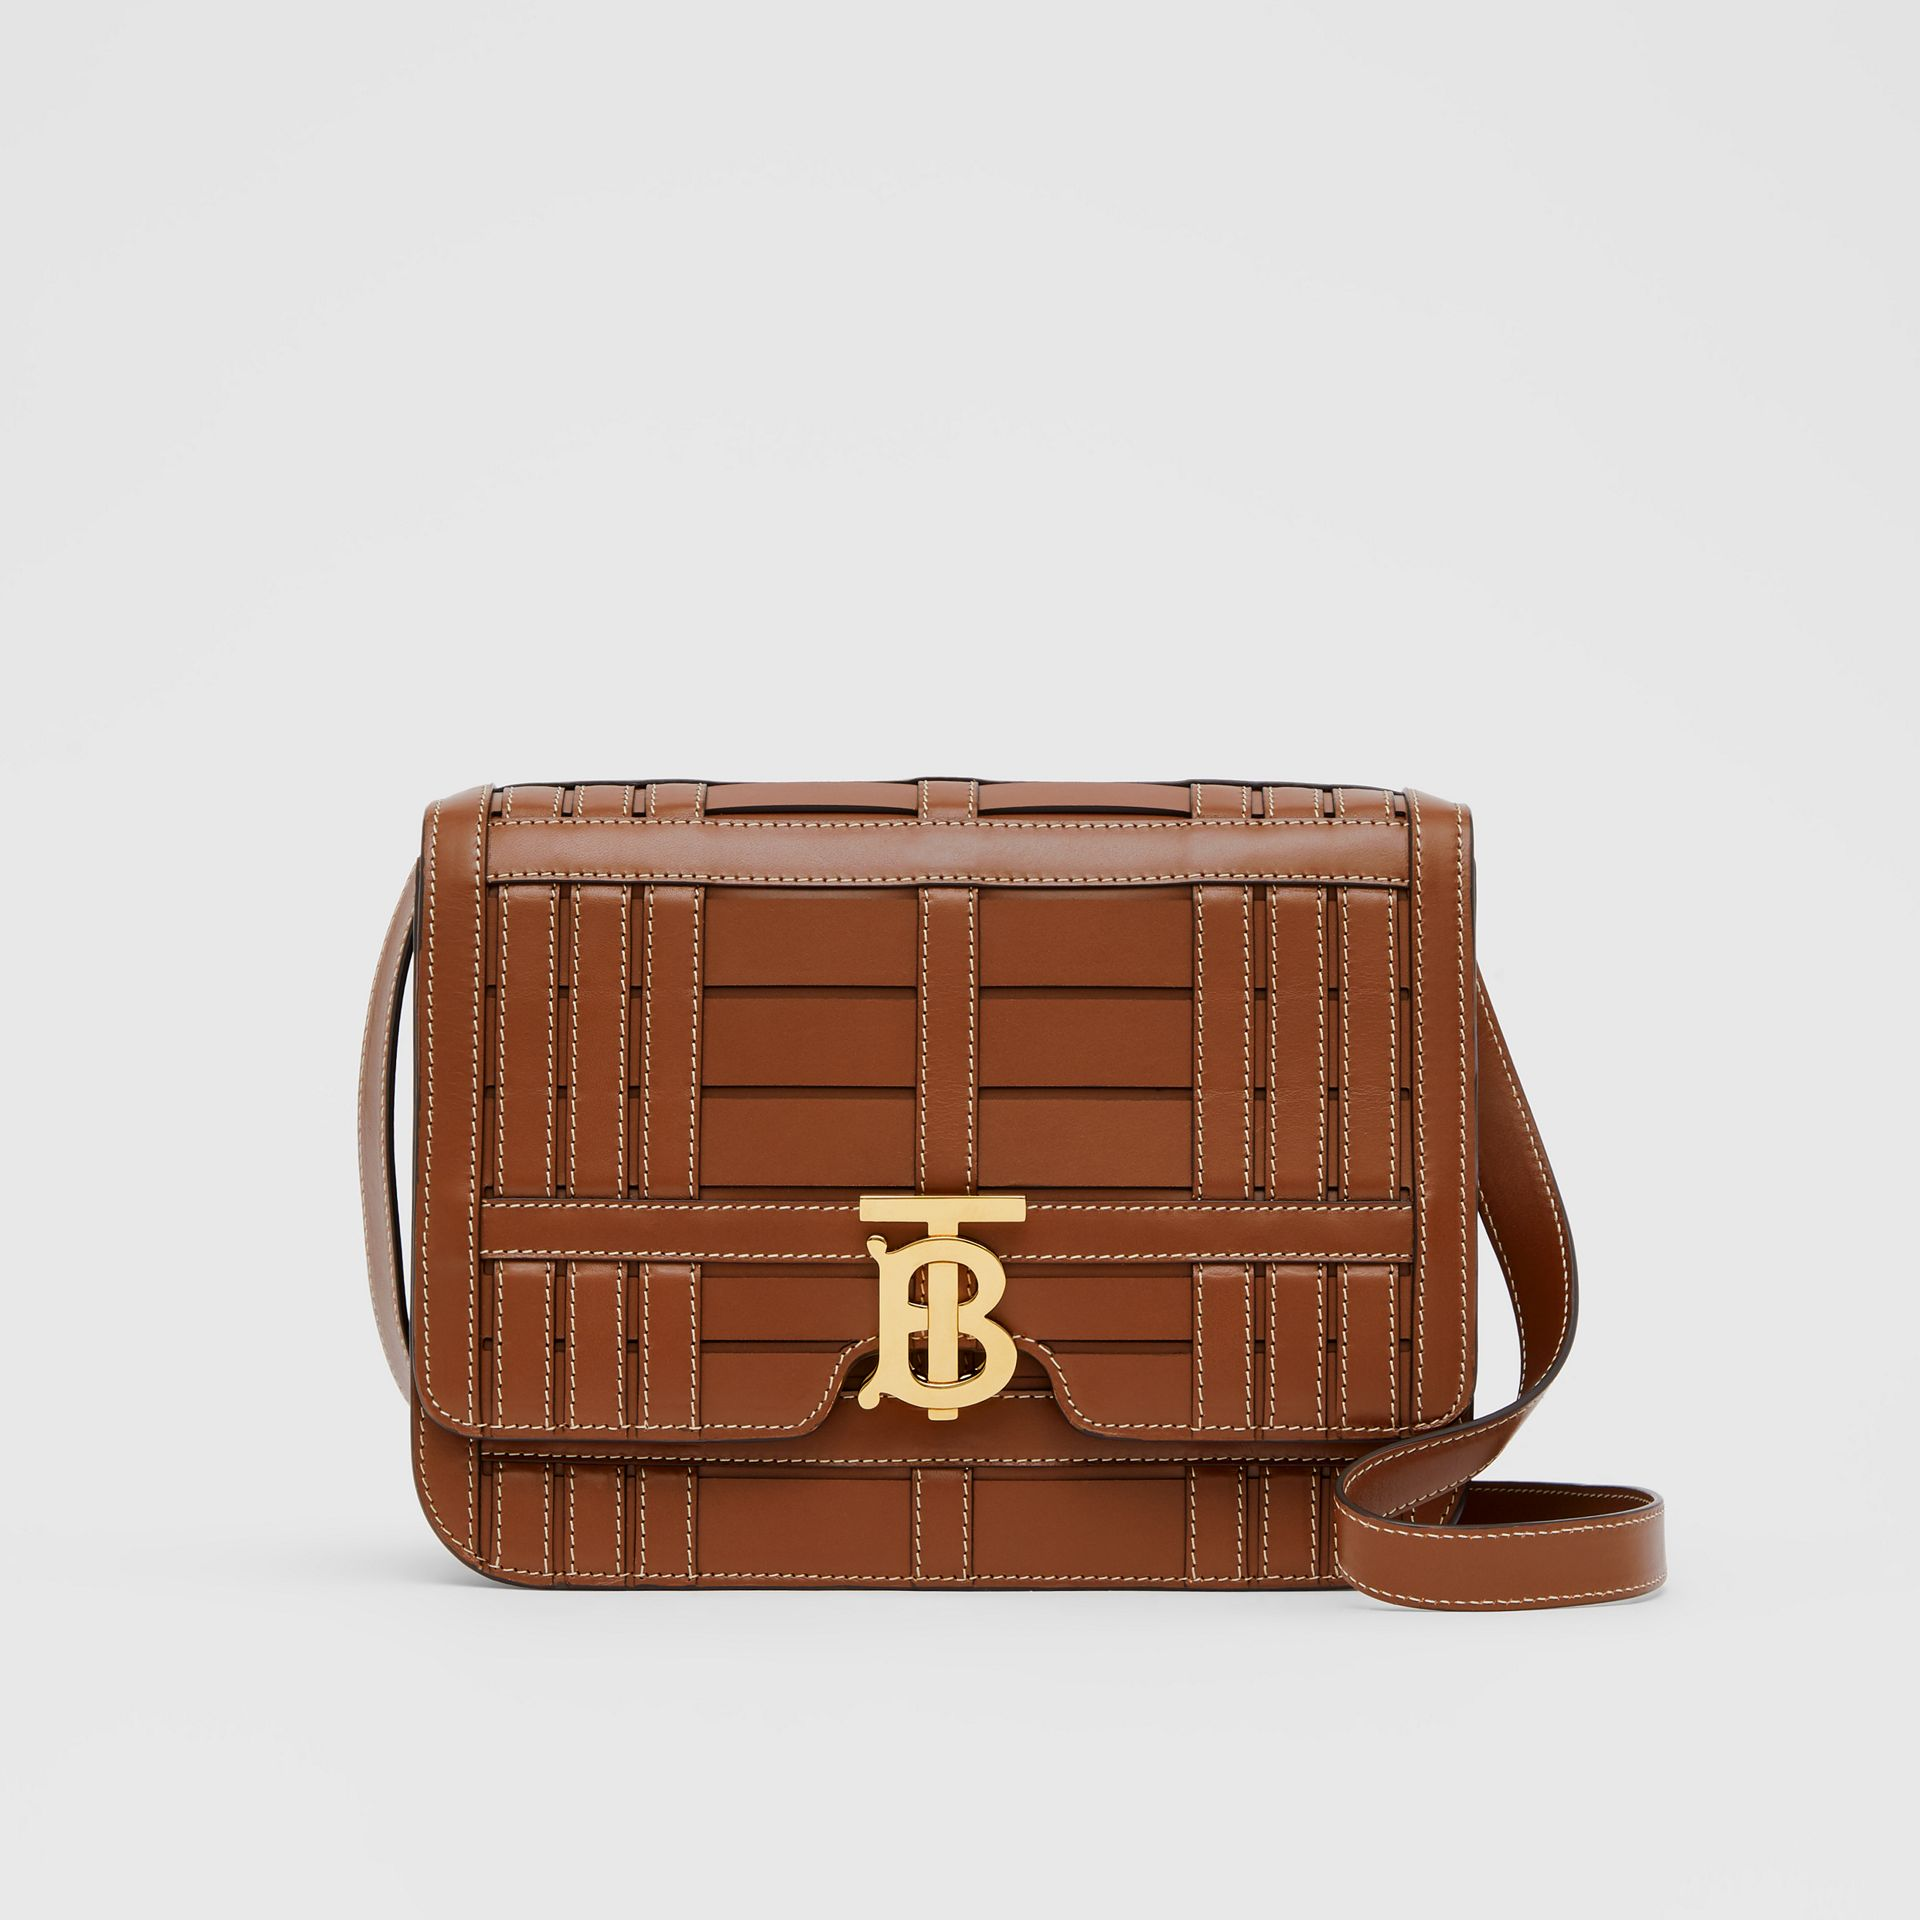 Medium Woven Leather TB Bag in Tan - Women | Burberry - gallery image 0